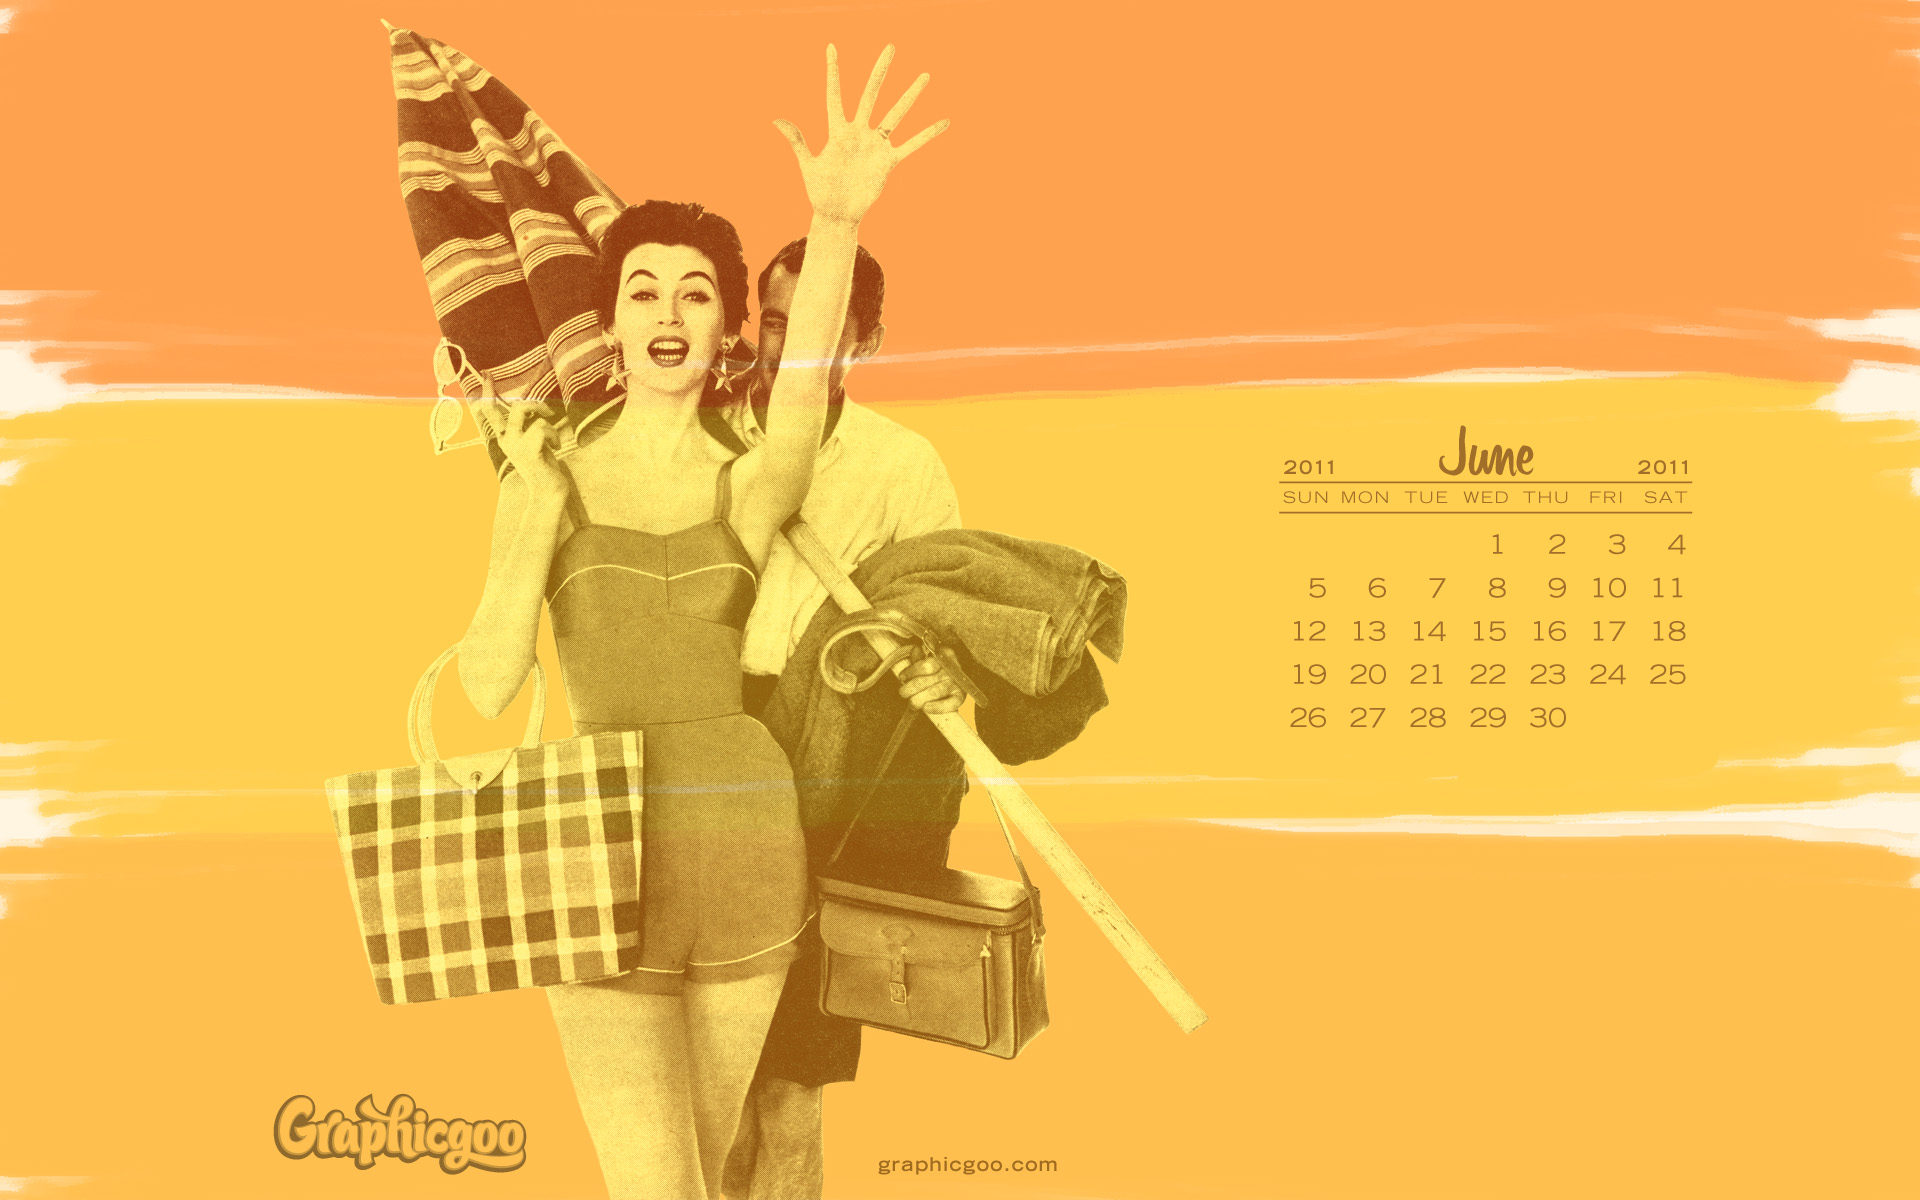 Desktop Wallpaper for June 2011